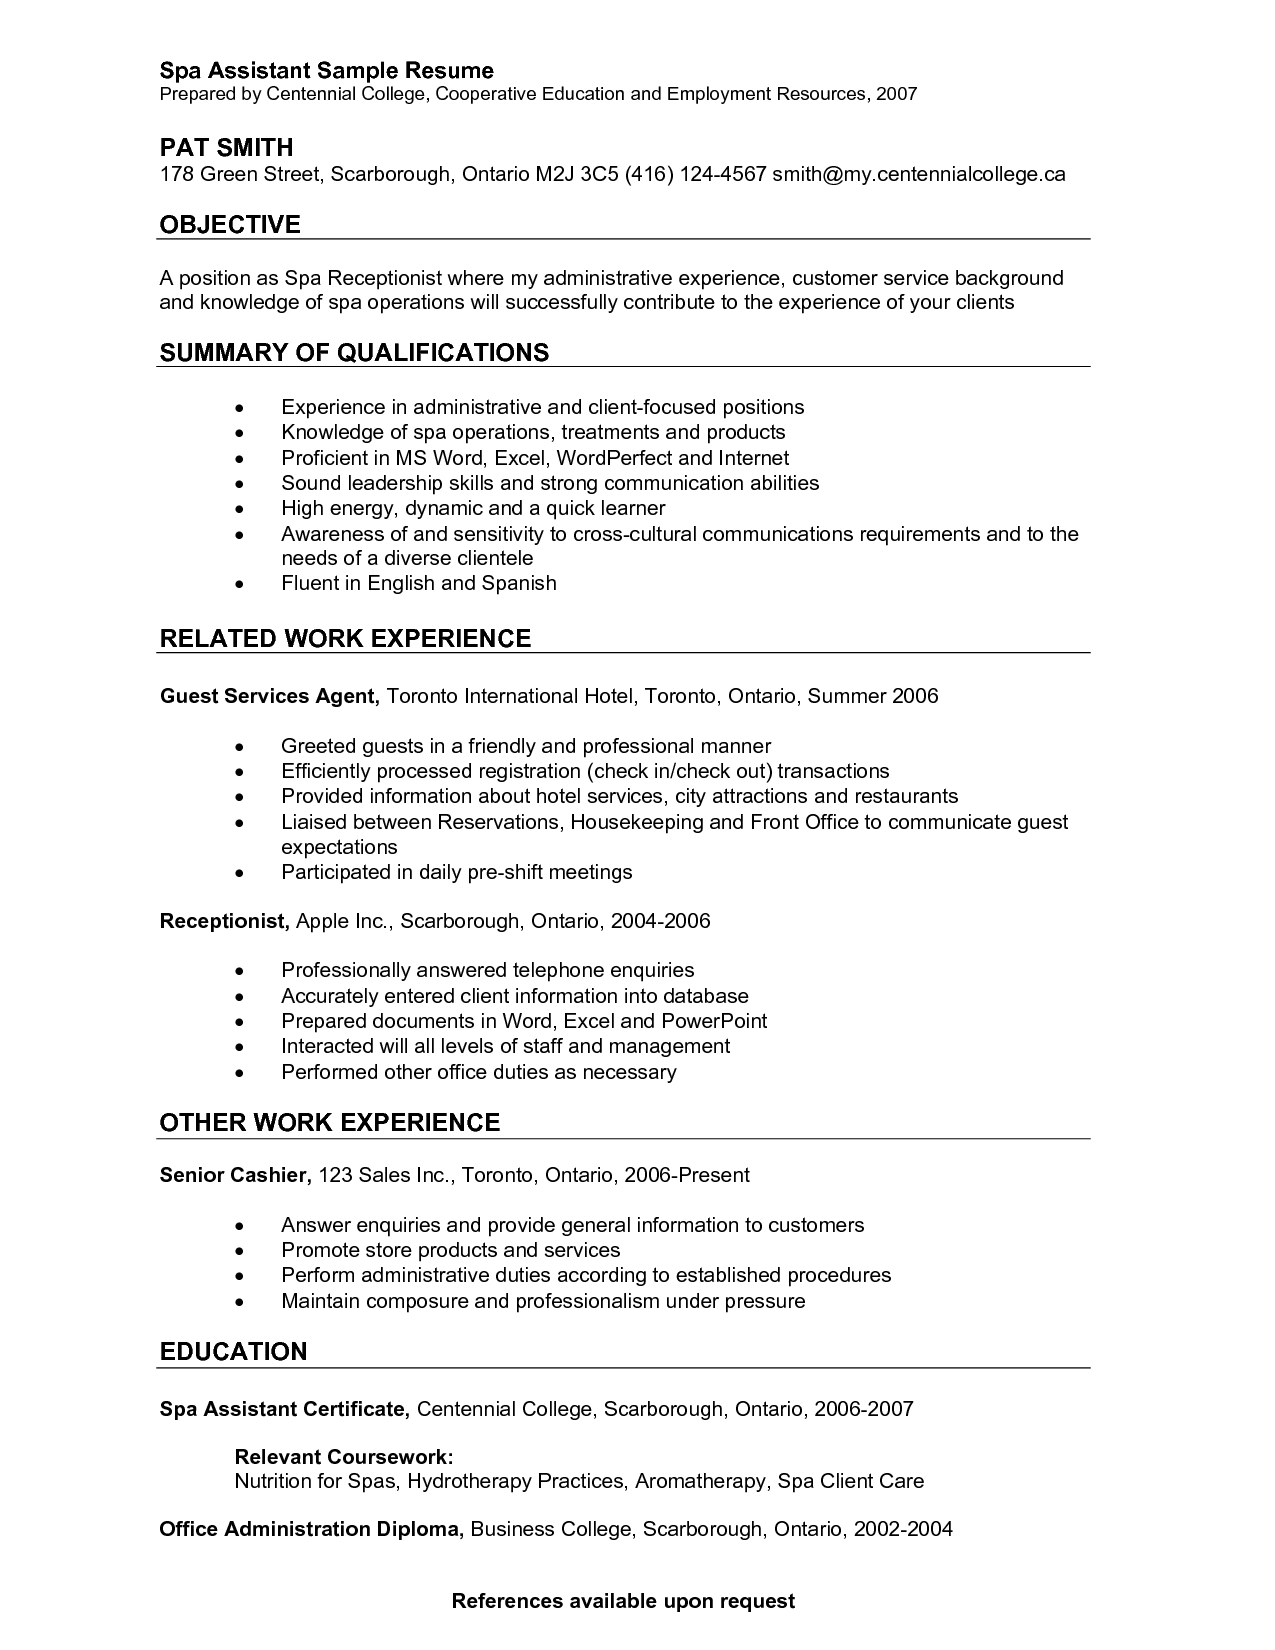 Receptionist Resume Format Medical Receptionist Resume Objective Samples  Resume  Pinterest .